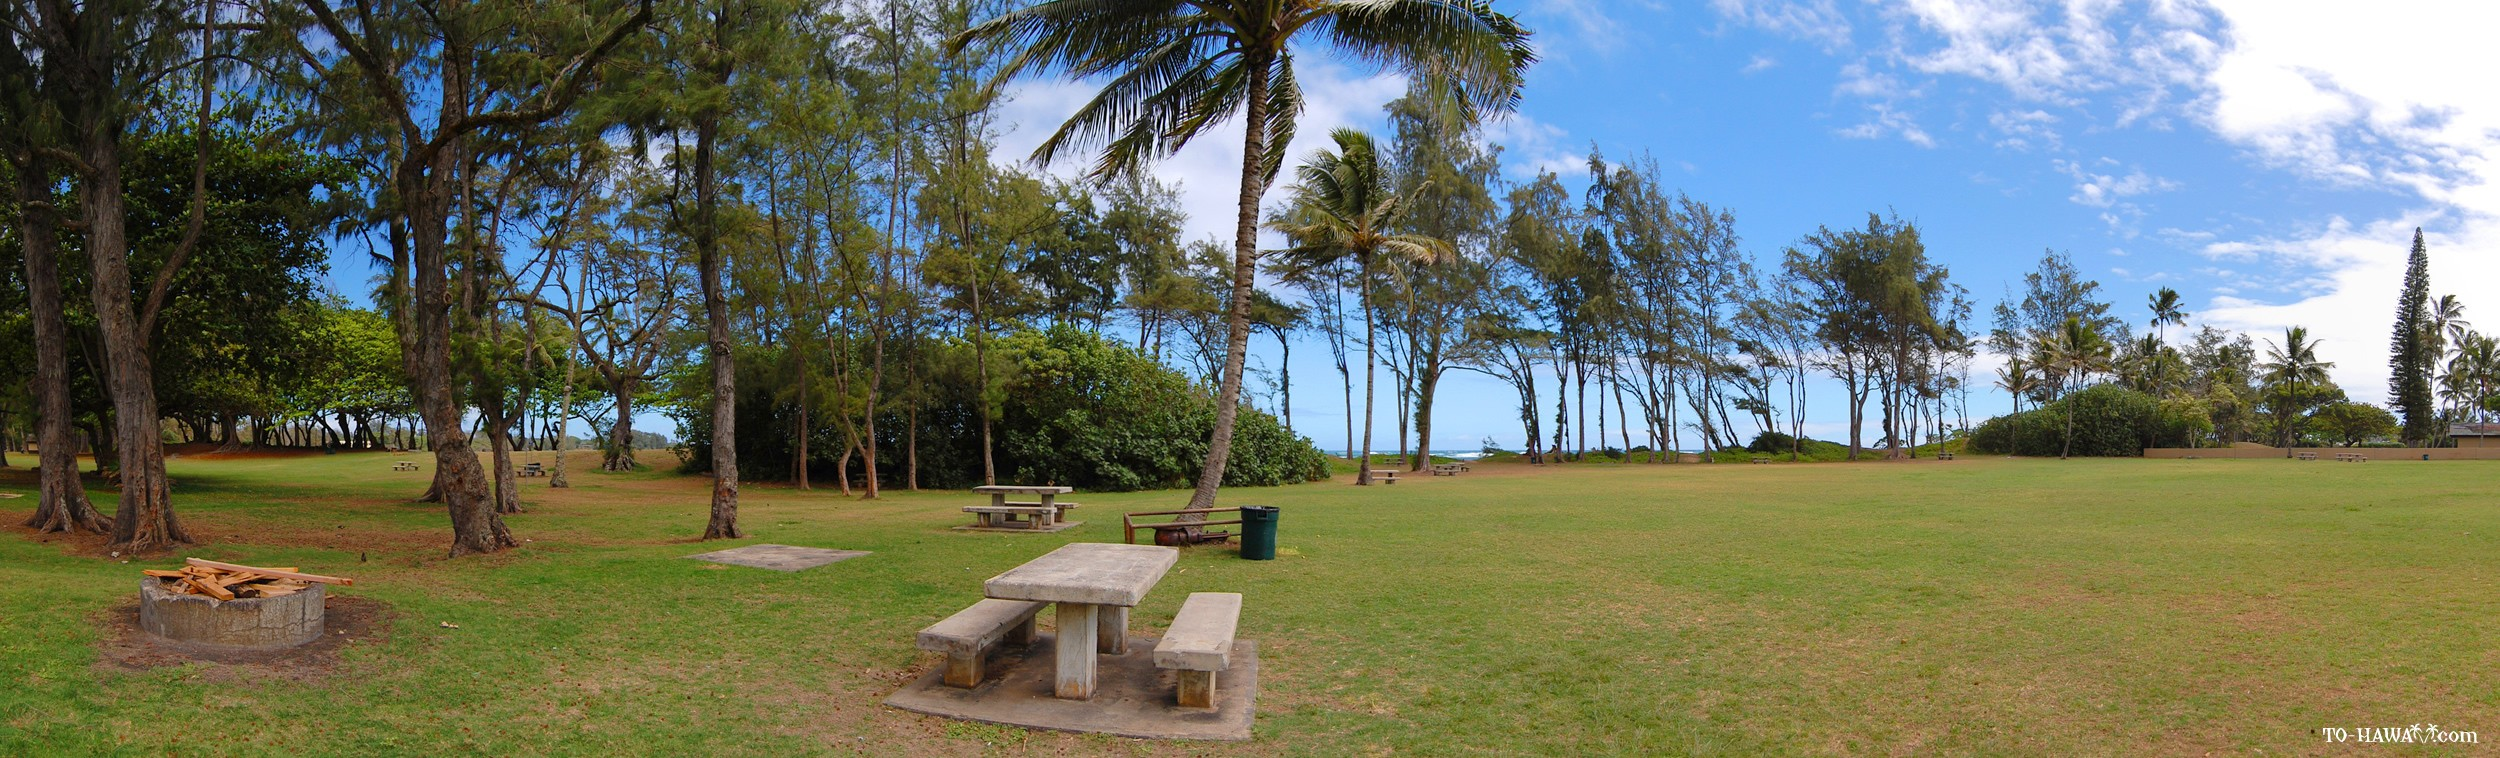 Index of /oahu/beaches...